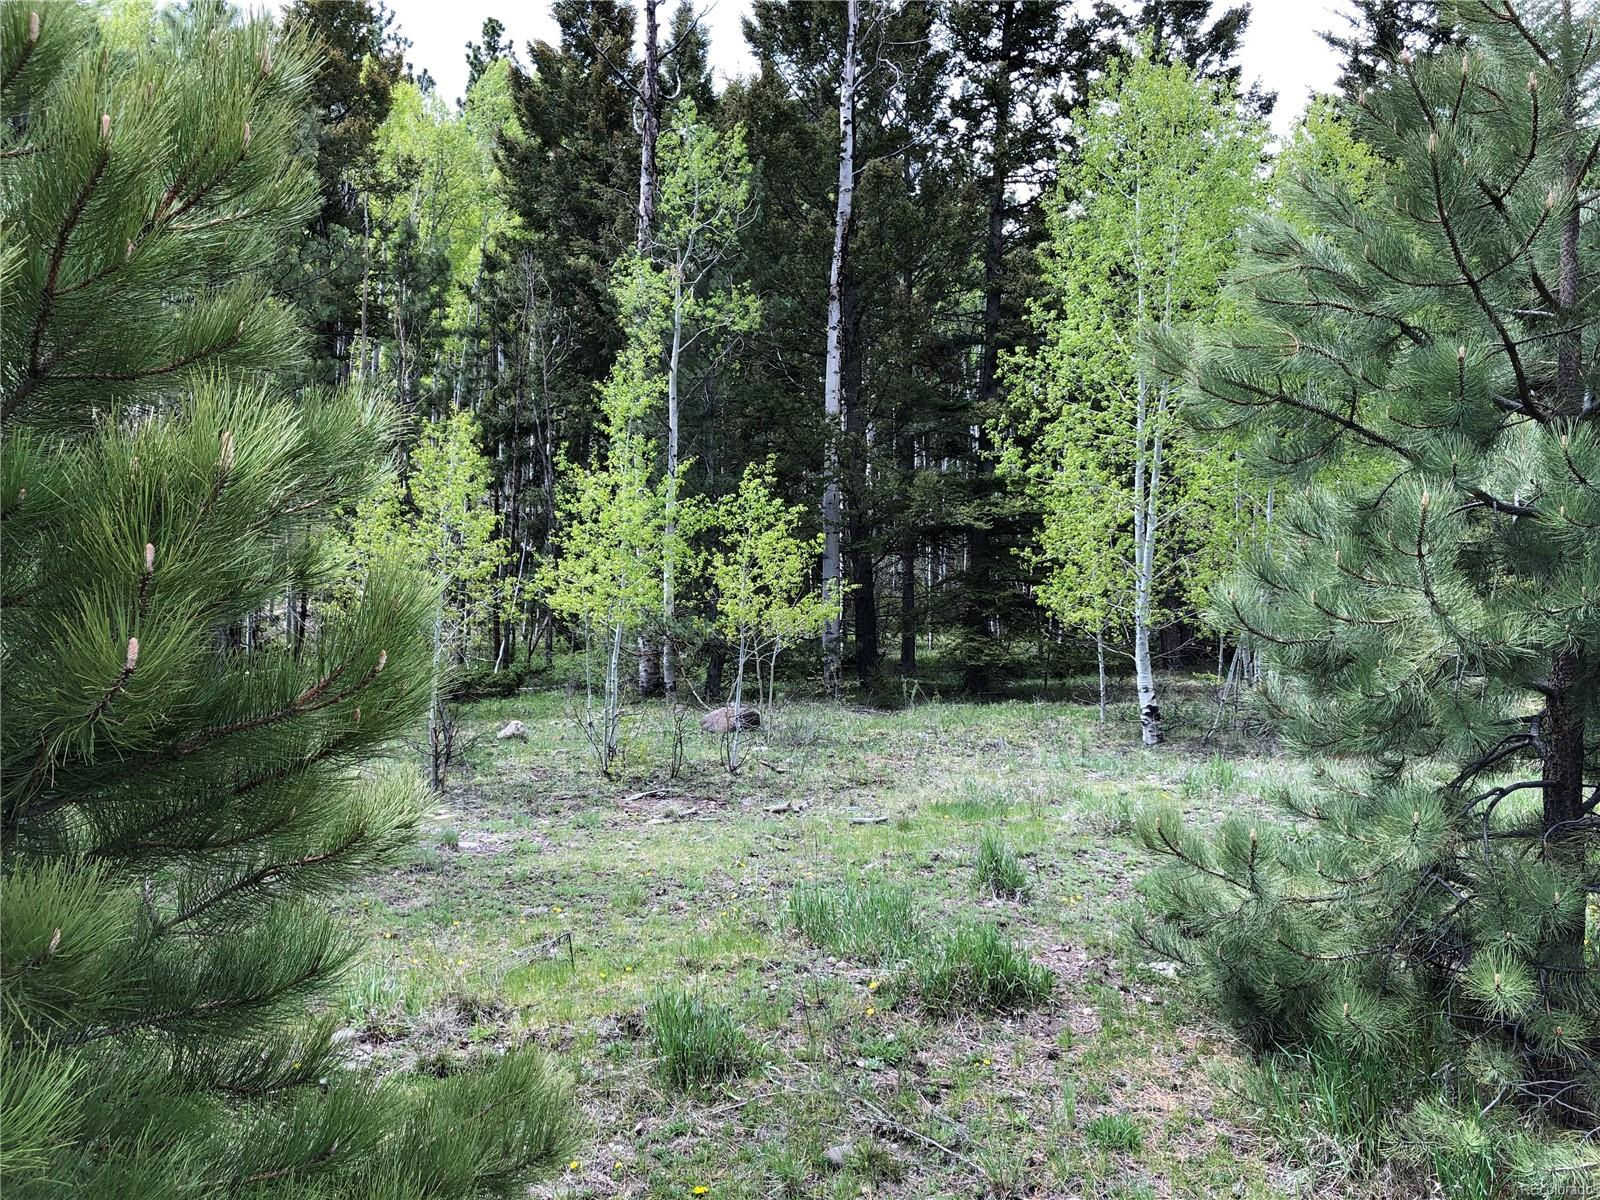 22 W Canyon View Drive, Antonito, CO 81120 - Antonito, CO real estate listing